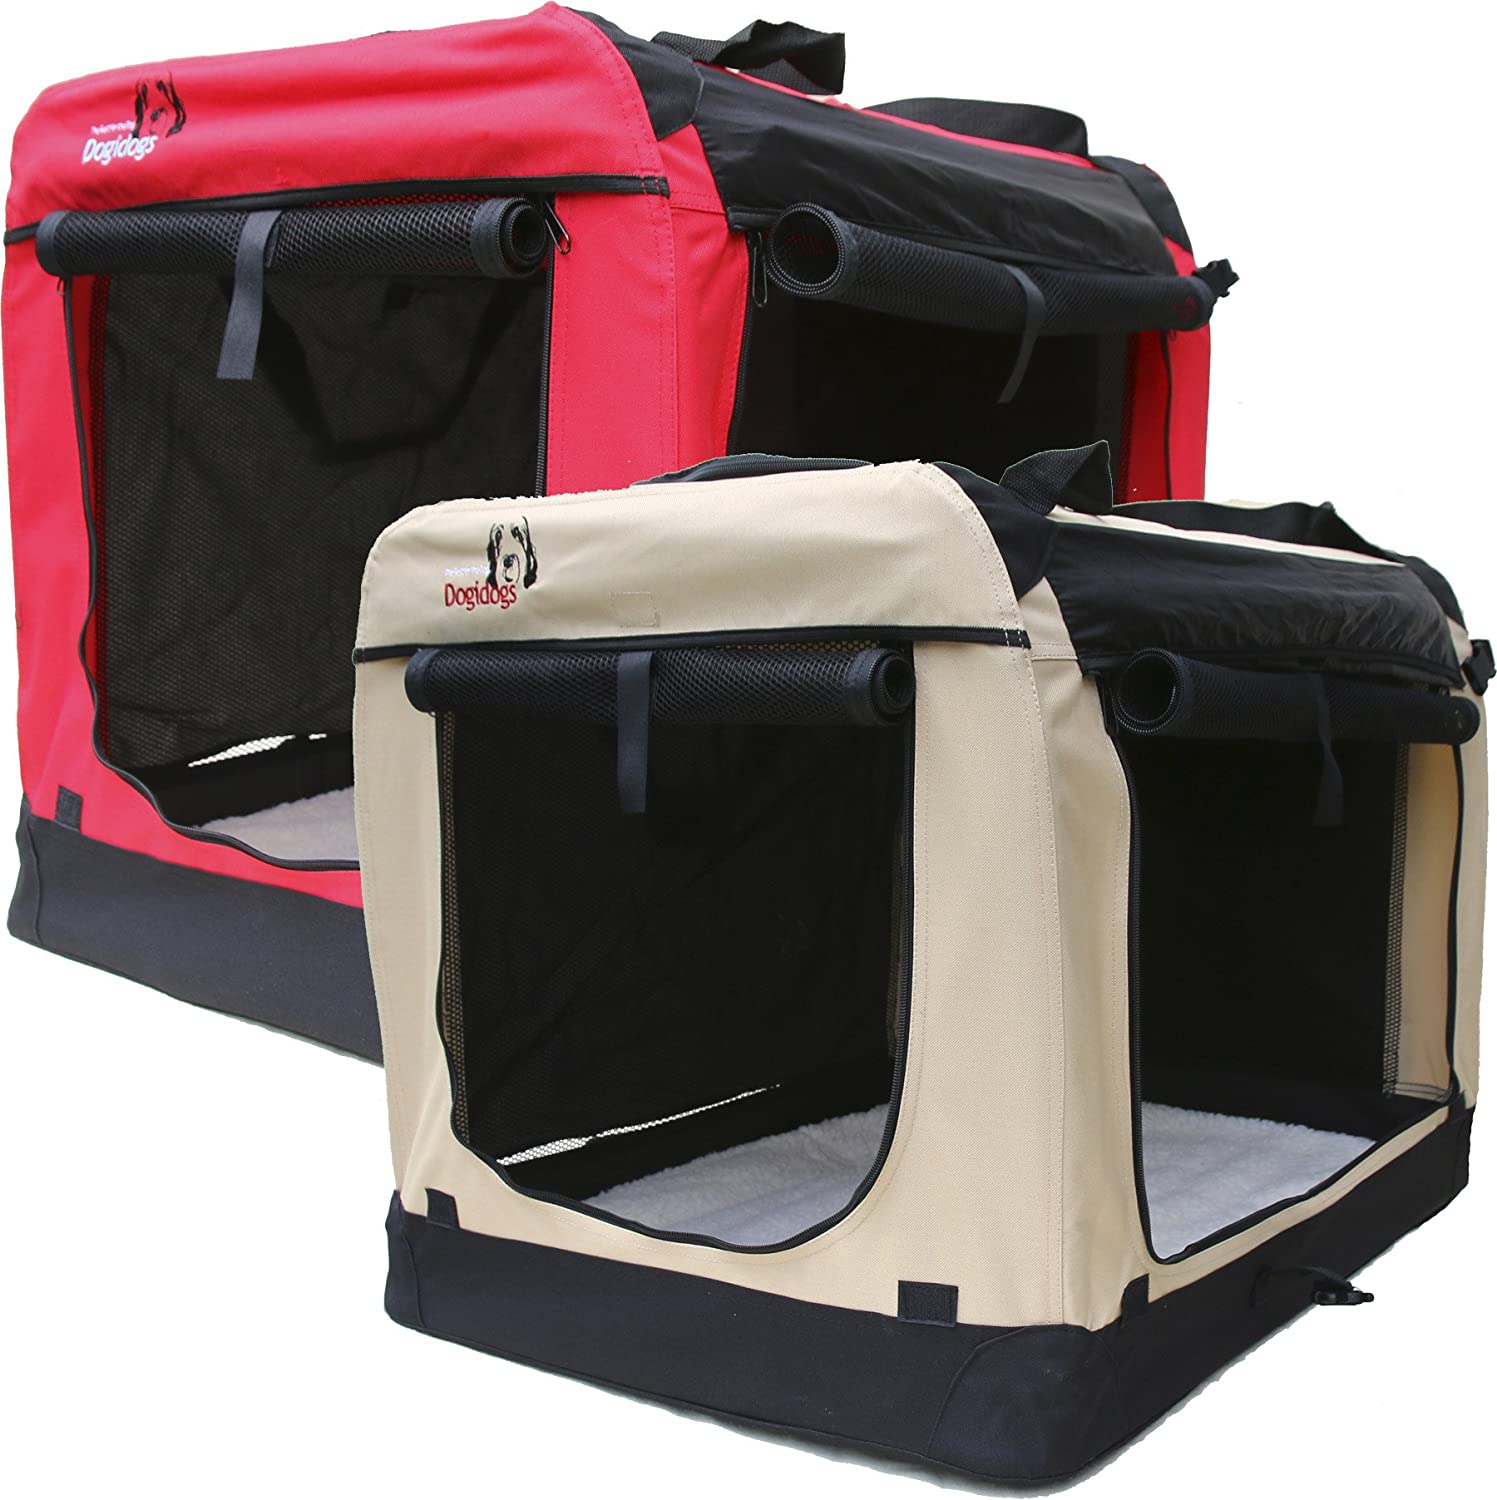 Dog transport box, foldable, dog kennel, 6 sizes, red or beige